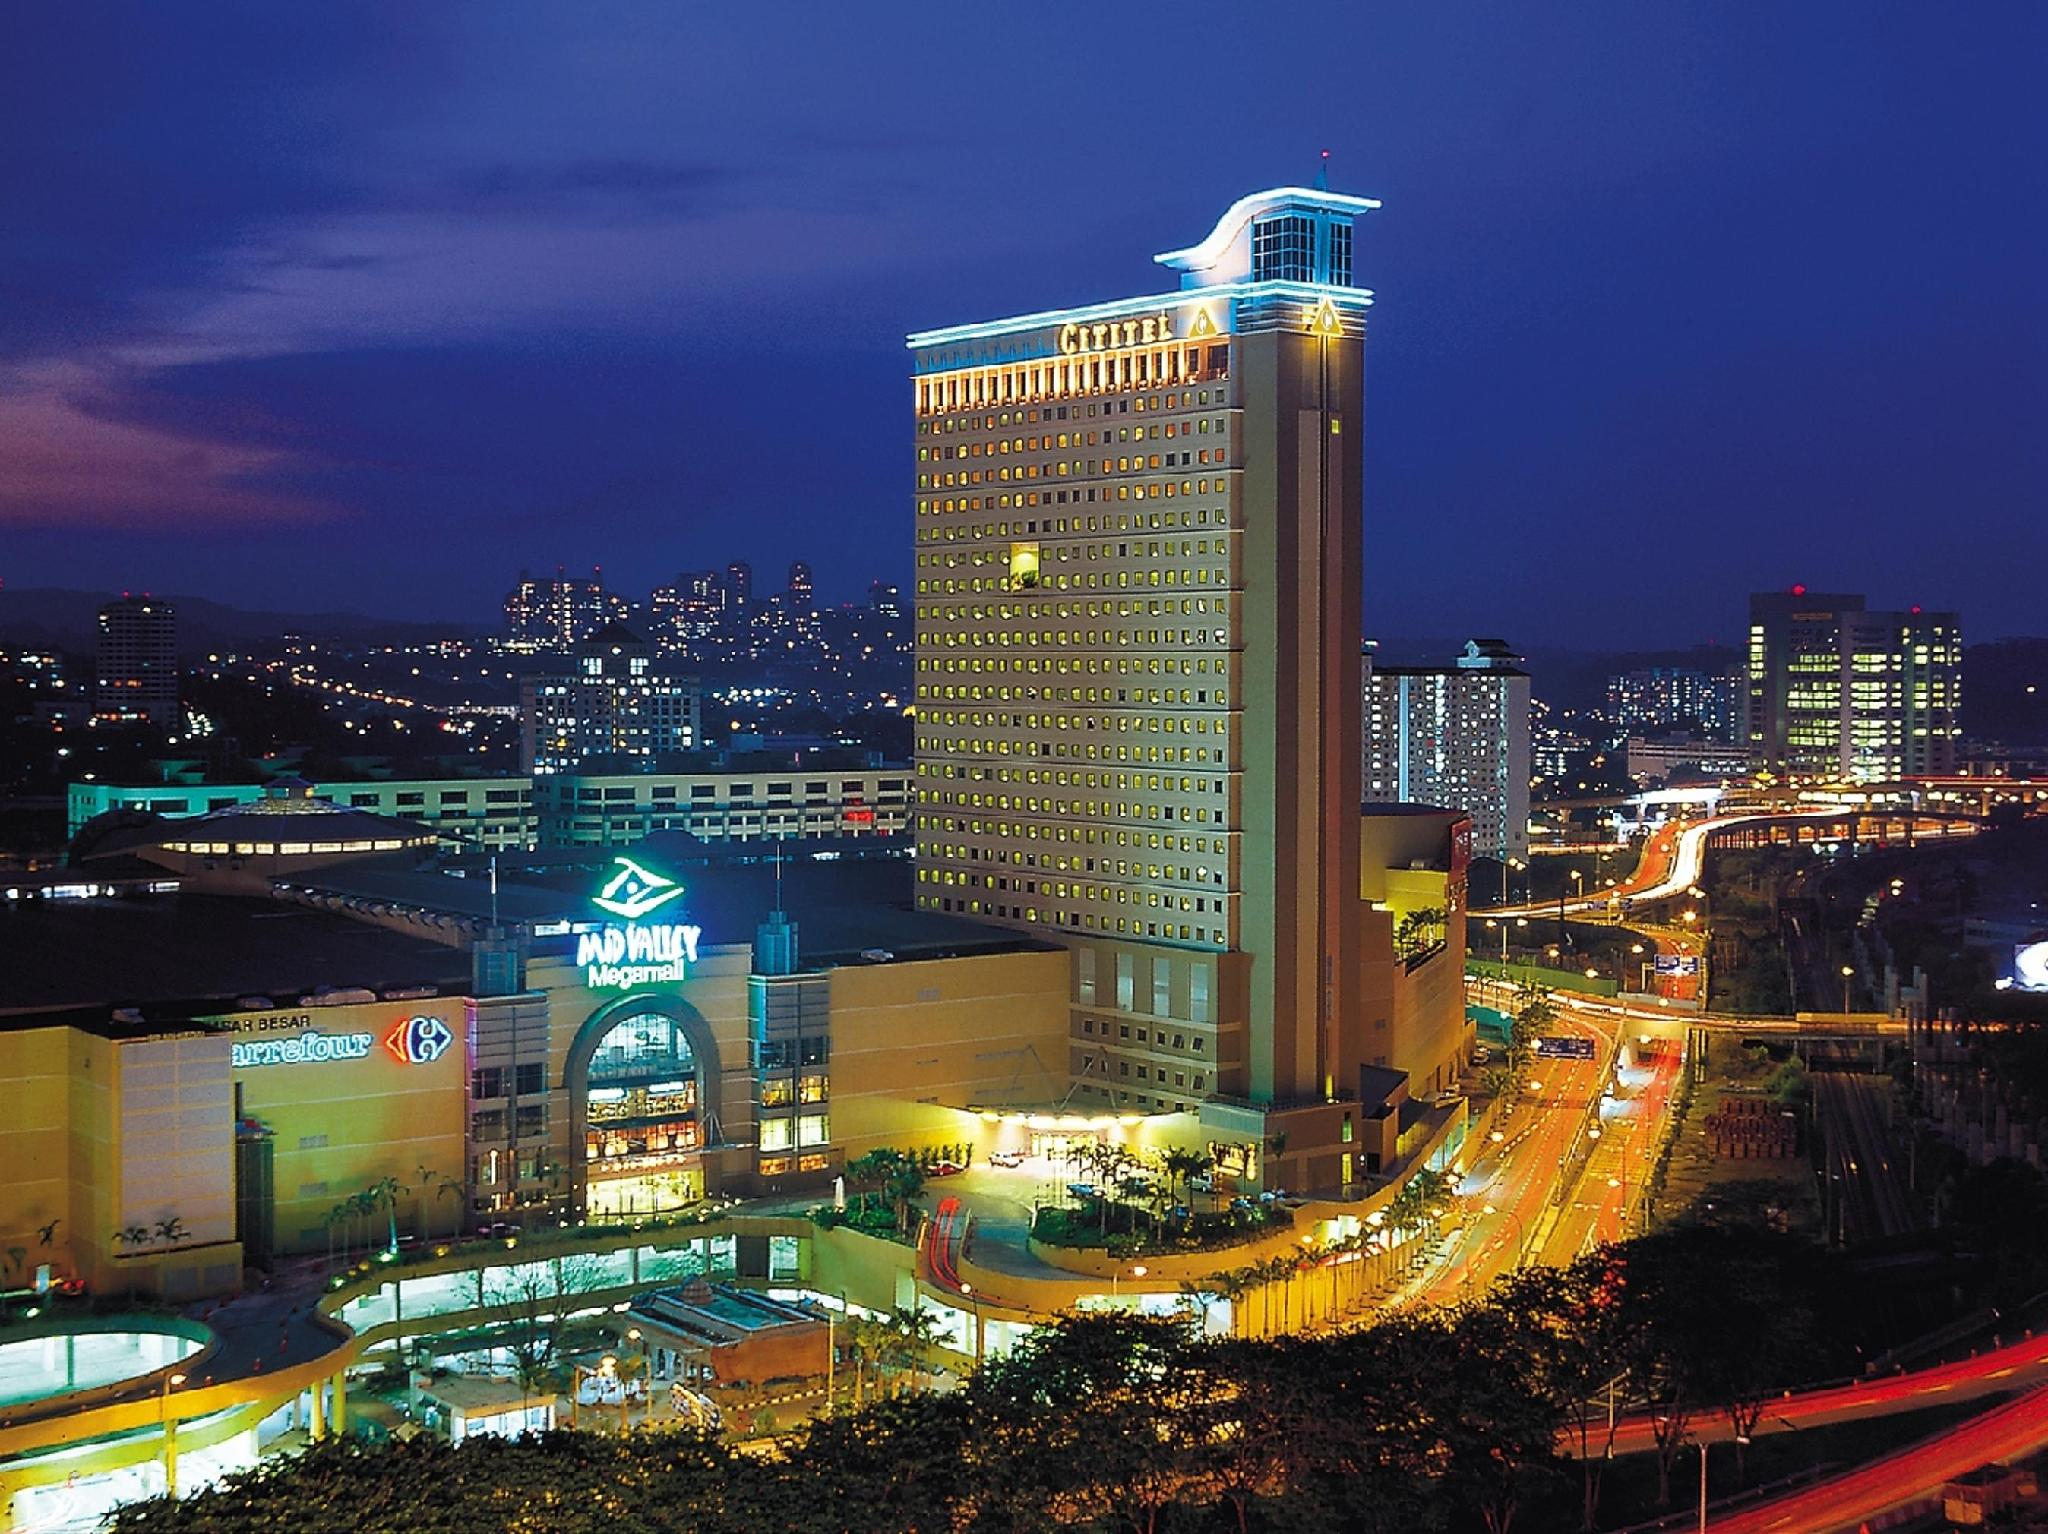 More About Cititel Mid Valley Hotel